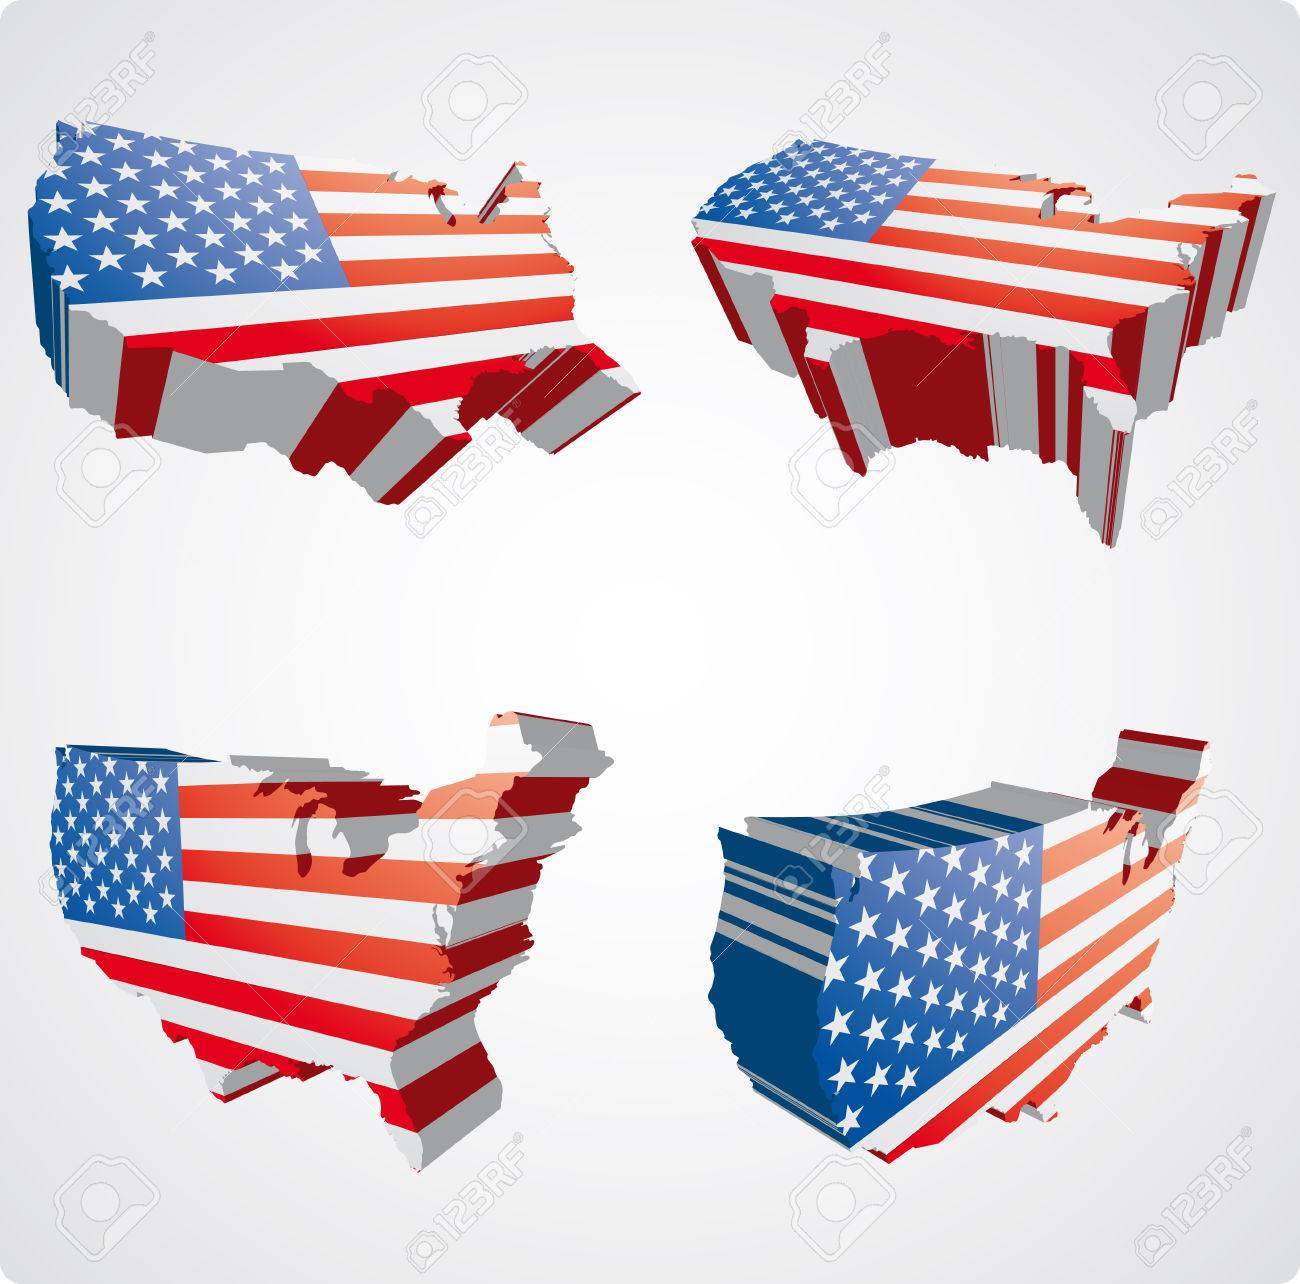 Four Perspective Views In 3d Style Of The Usa Map Stock Vector 3504915